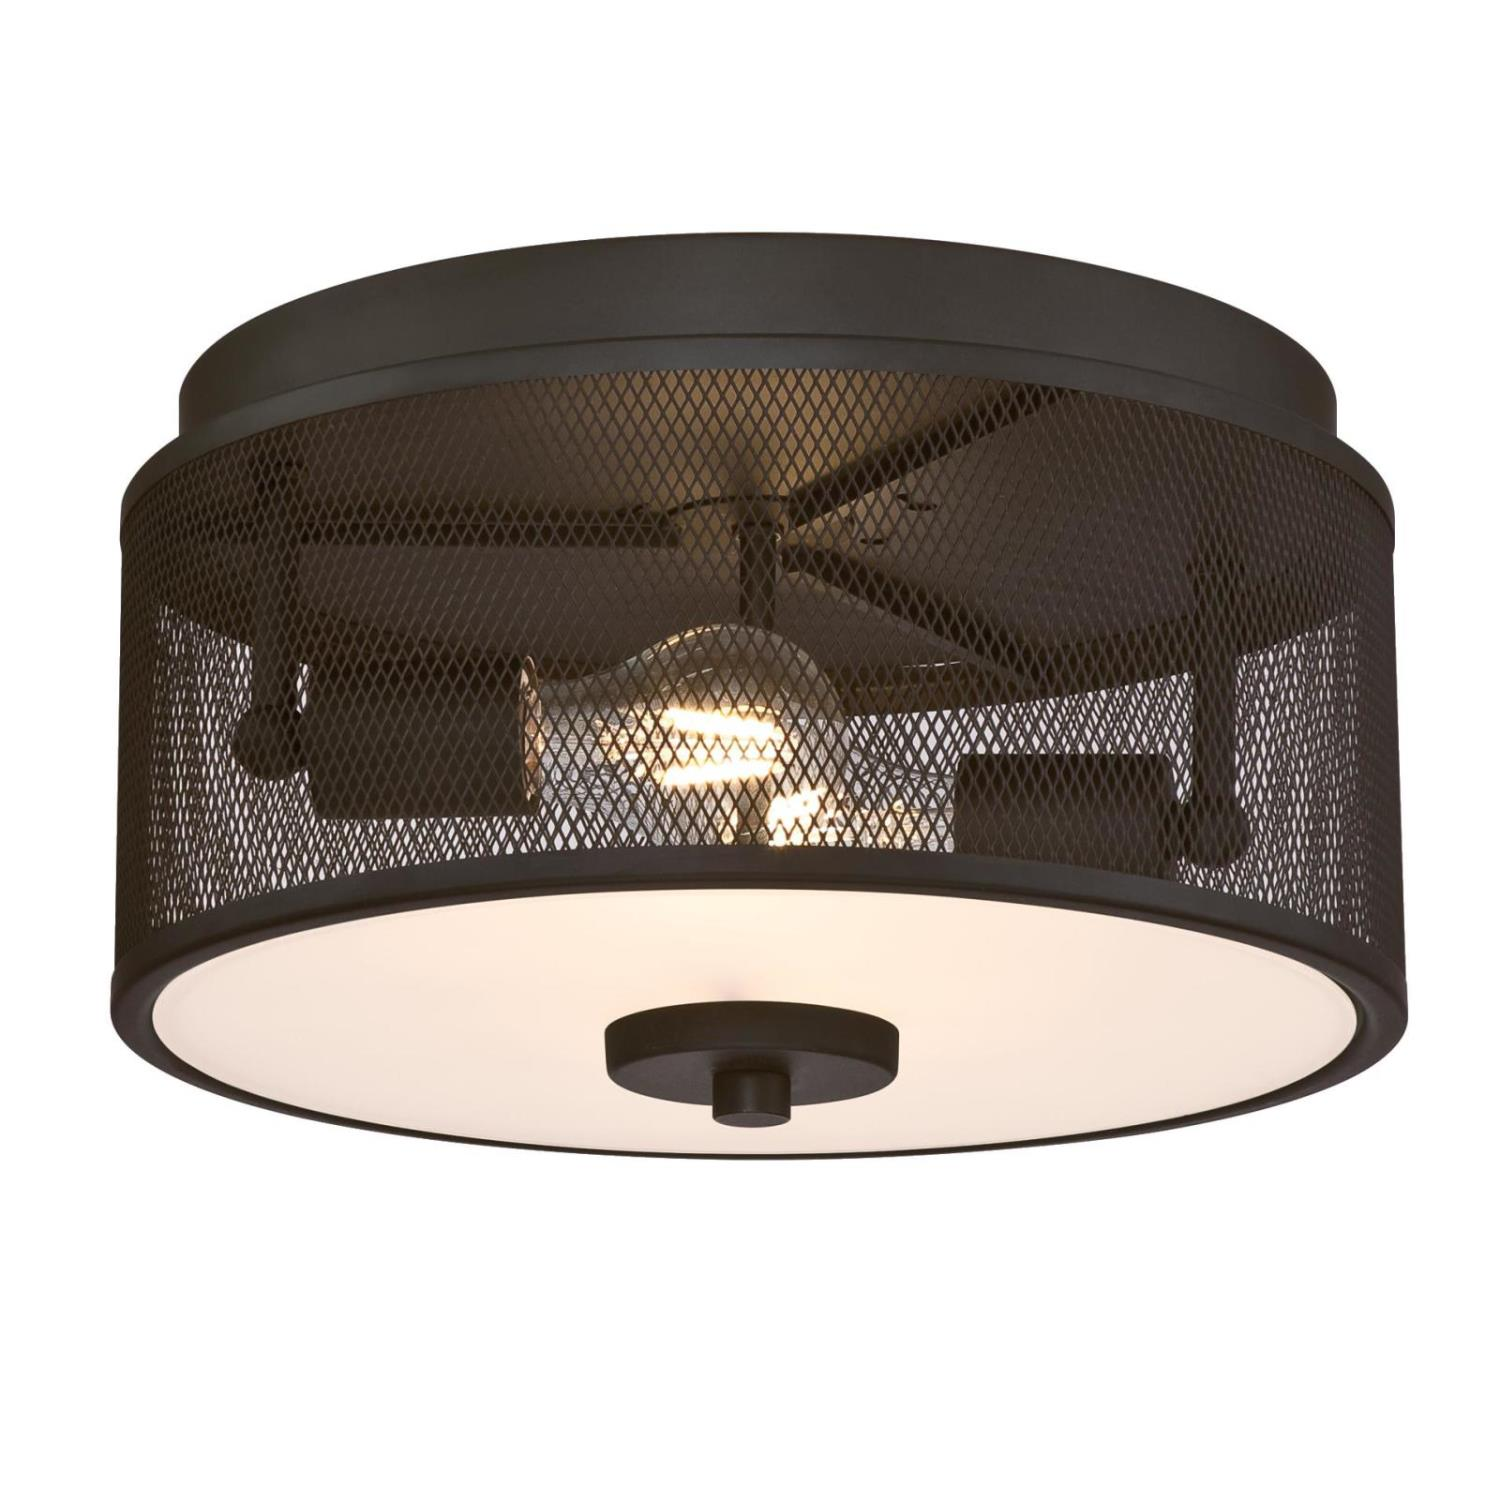 13 in. 2 Light Flush Oil Rubbed Bronze Finish with Mesh Shade and Frosted Glass